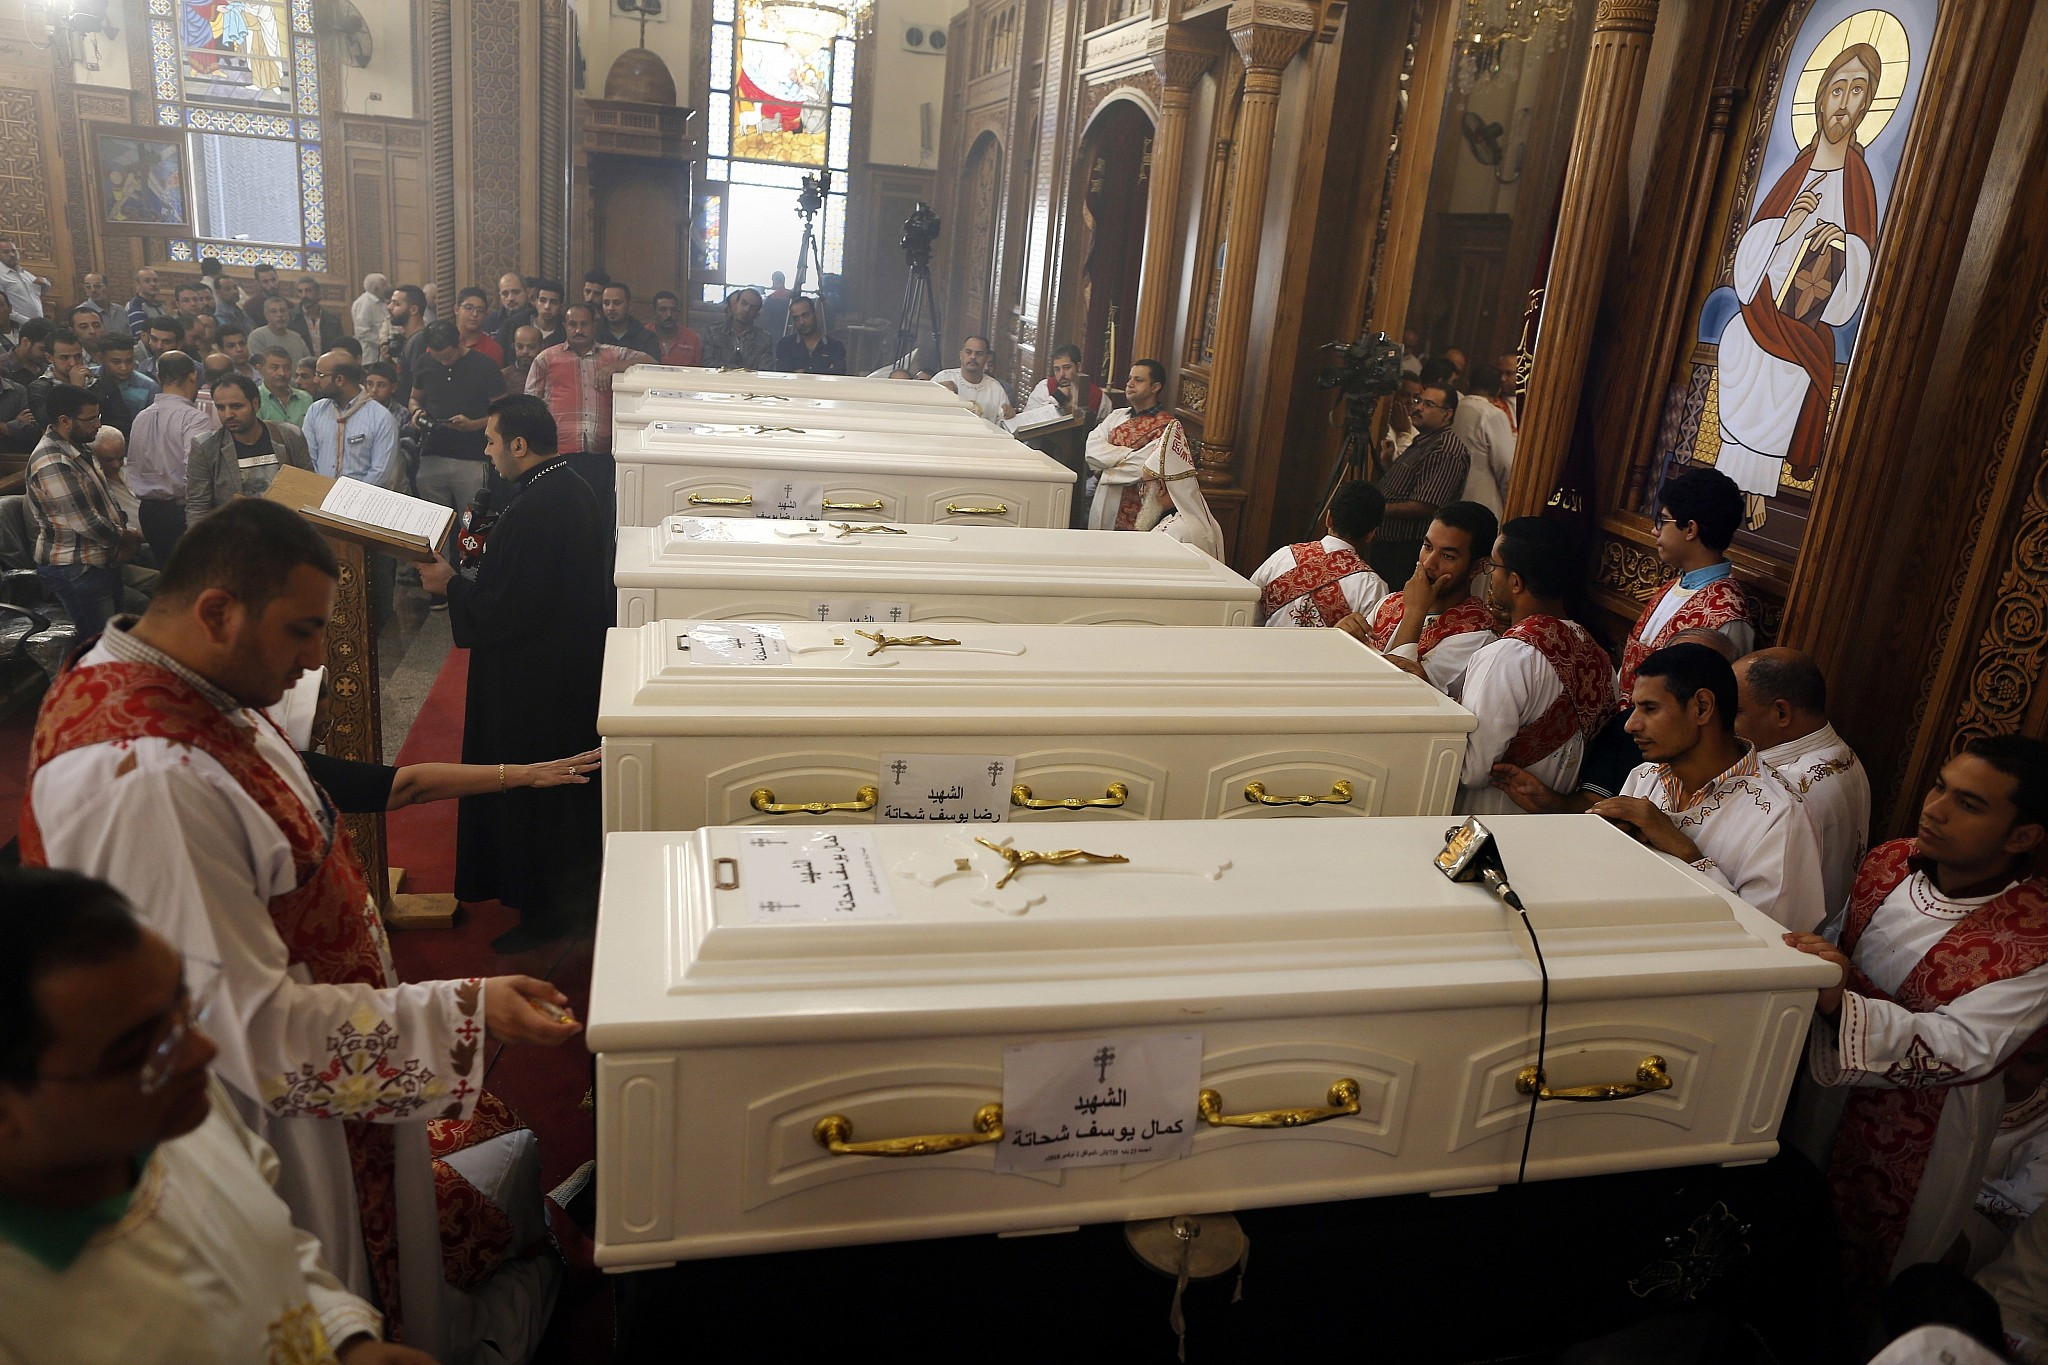 Egypt says perpetrators of attack against Christians killed